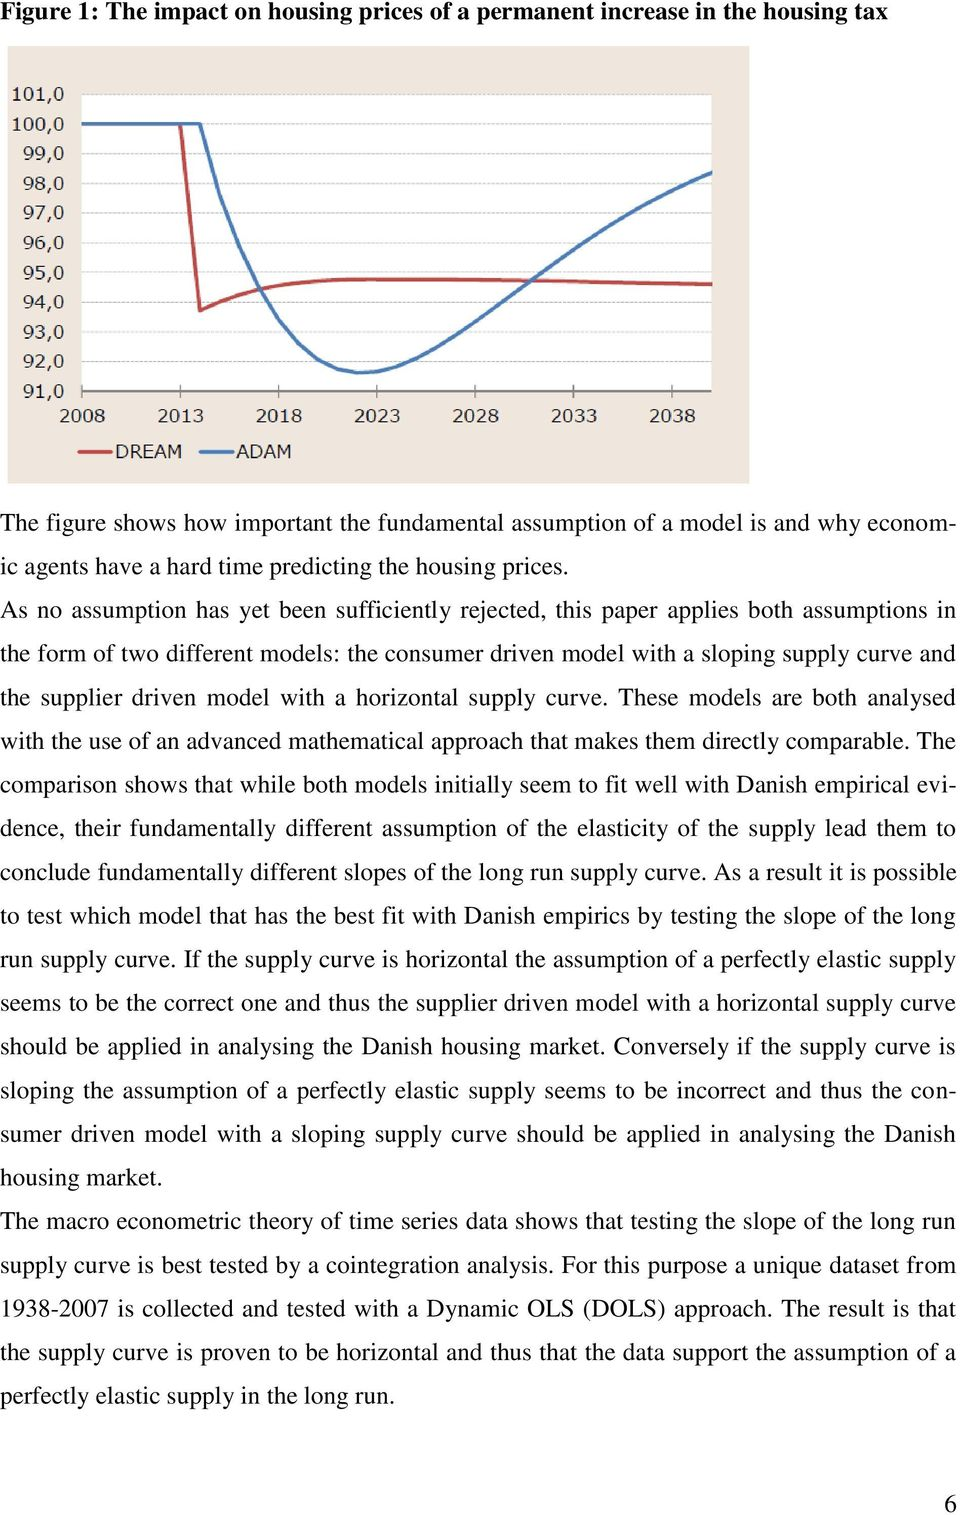 As no assumption has yet been sufficiently rejected, this paper applies both assumptions in the form of two different models: the consumer driven model with a sloping supply curve and the supplier